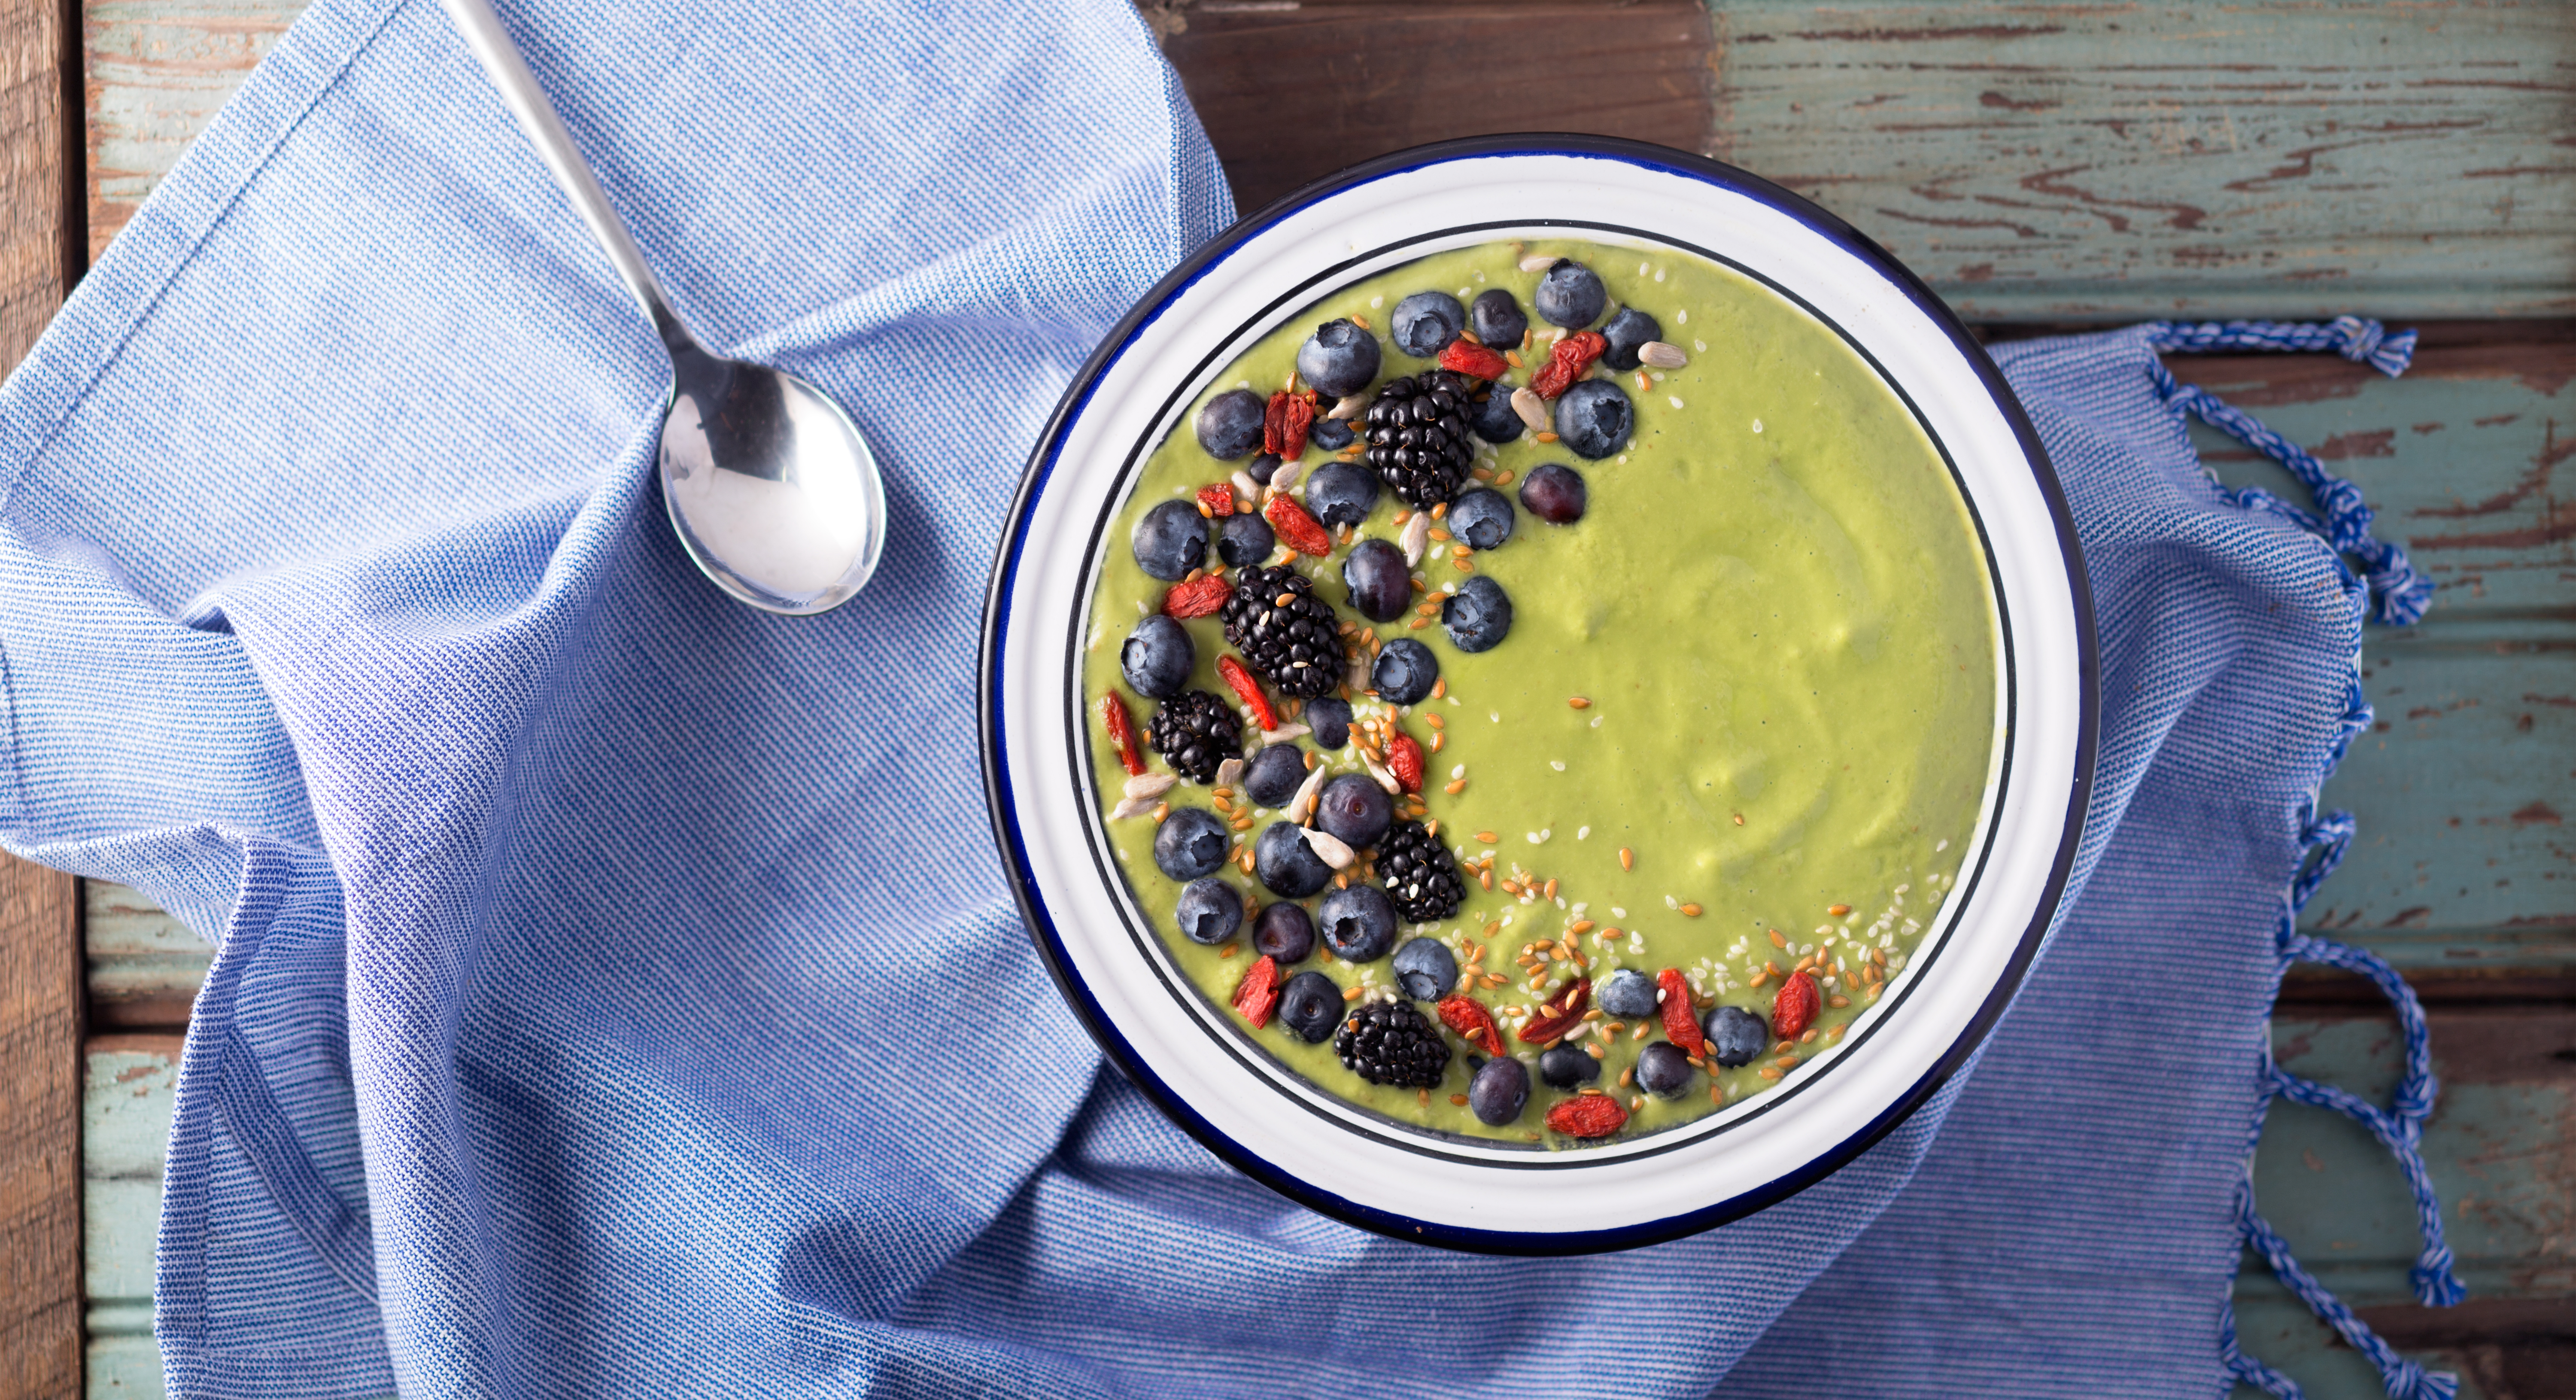 It's Easy Being Green With This Veggie-Packed Smoothie Bowl